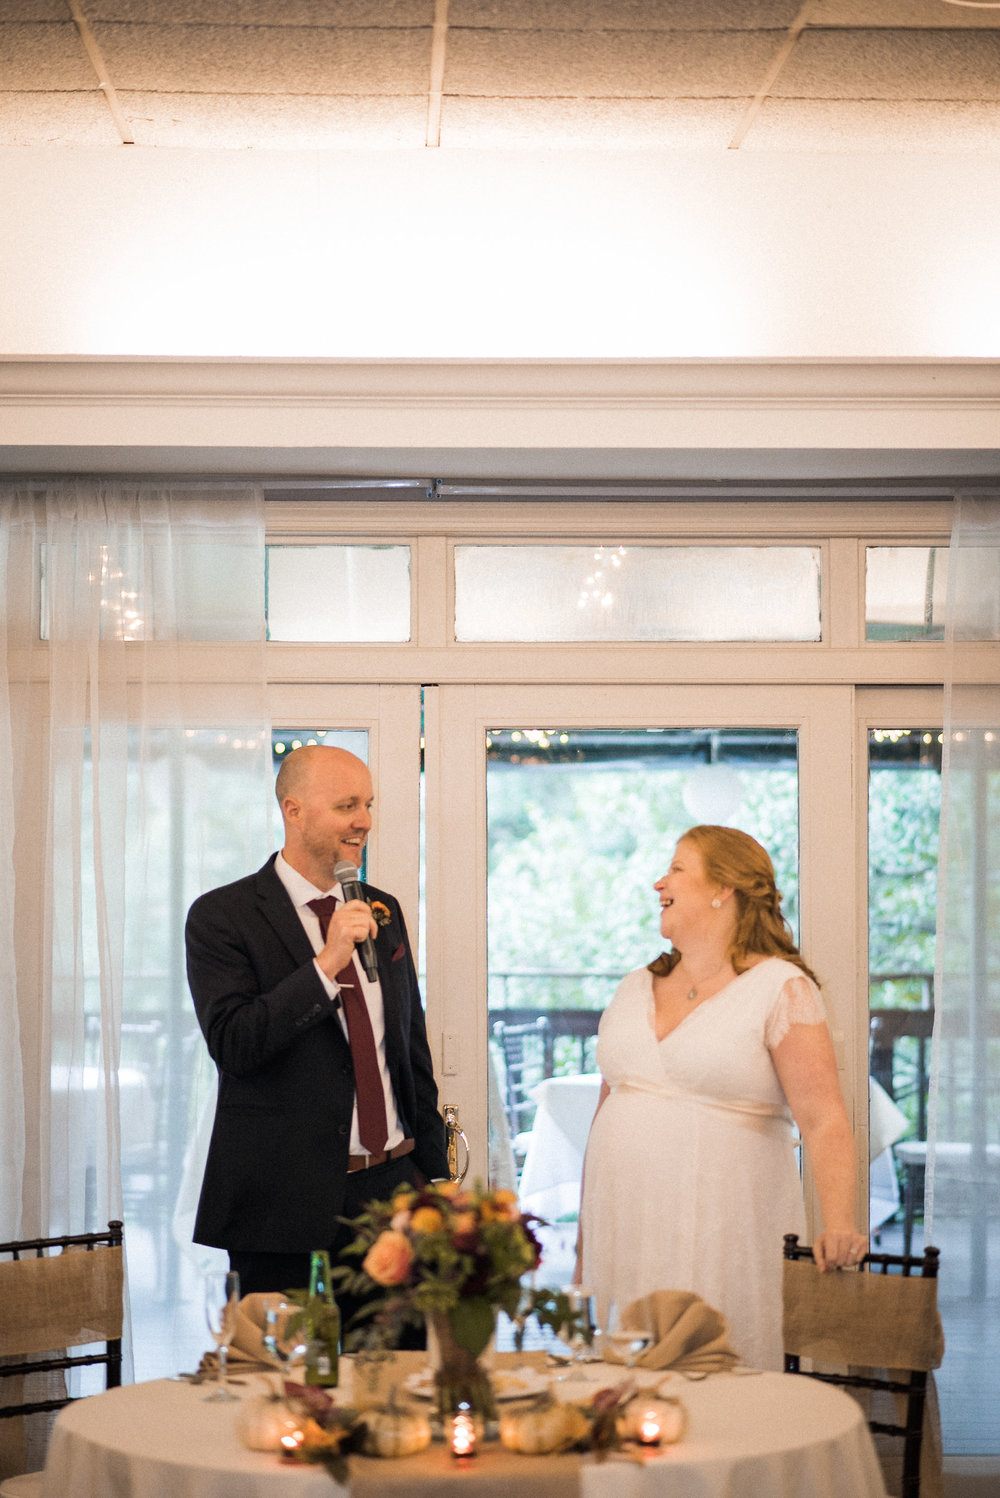 Bride and groom making speech